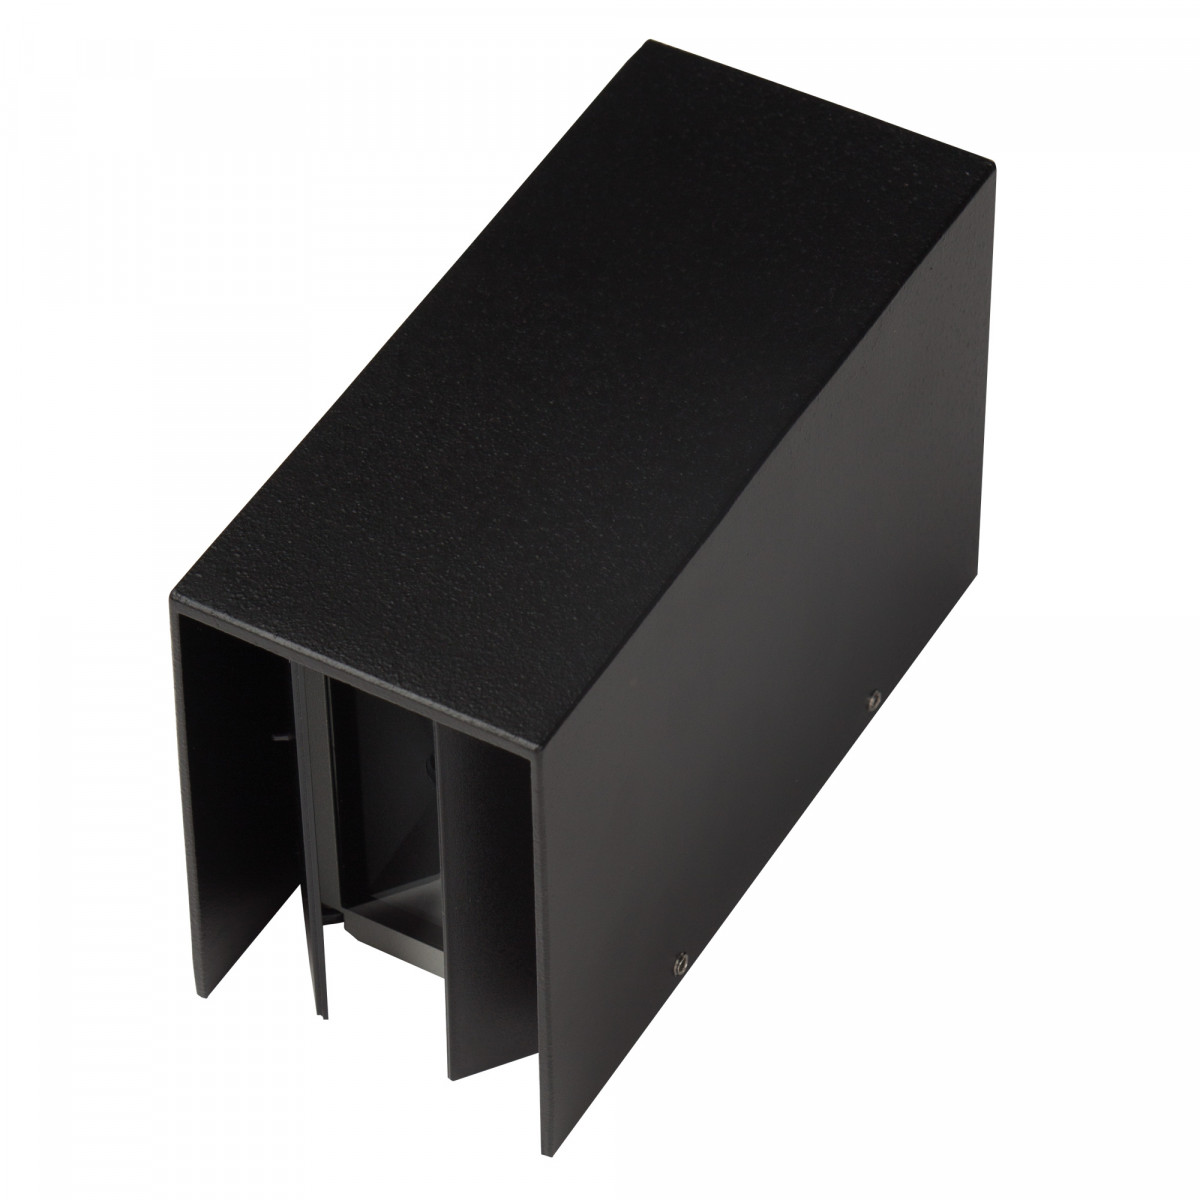 Up-Down LED vierkante wandspot Channel LED